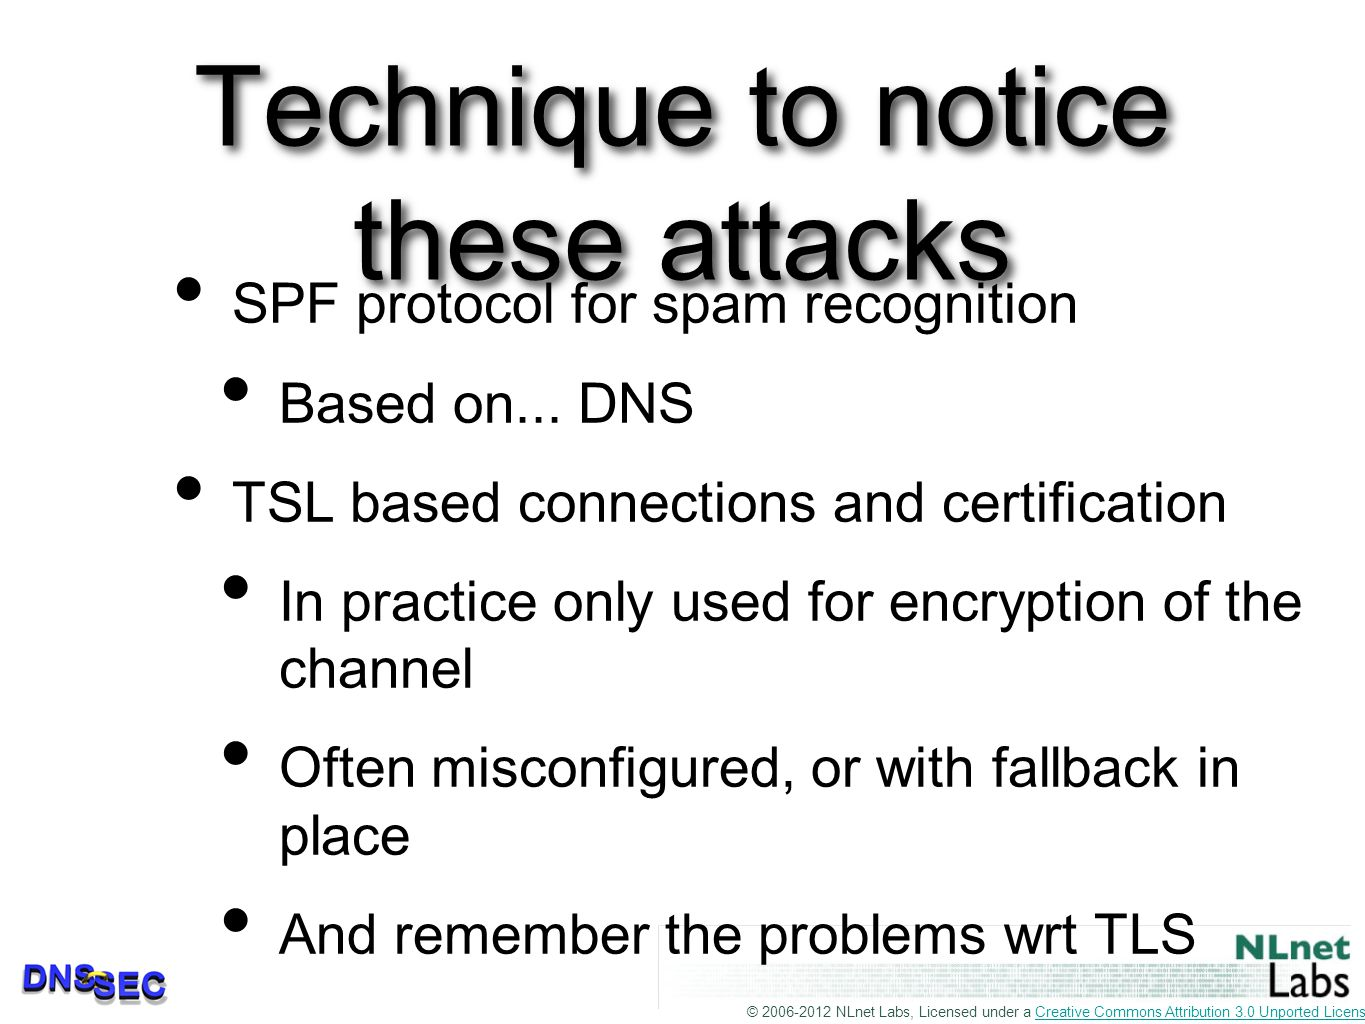 © 2006-2012 NLnet Labs, Licensed under a Creative Commons Attribution 3.0 Unported License.Creative Commons Attribution 3.0 Unported License Technique to notice these attacks SPF protocol for spam recognition Based on...